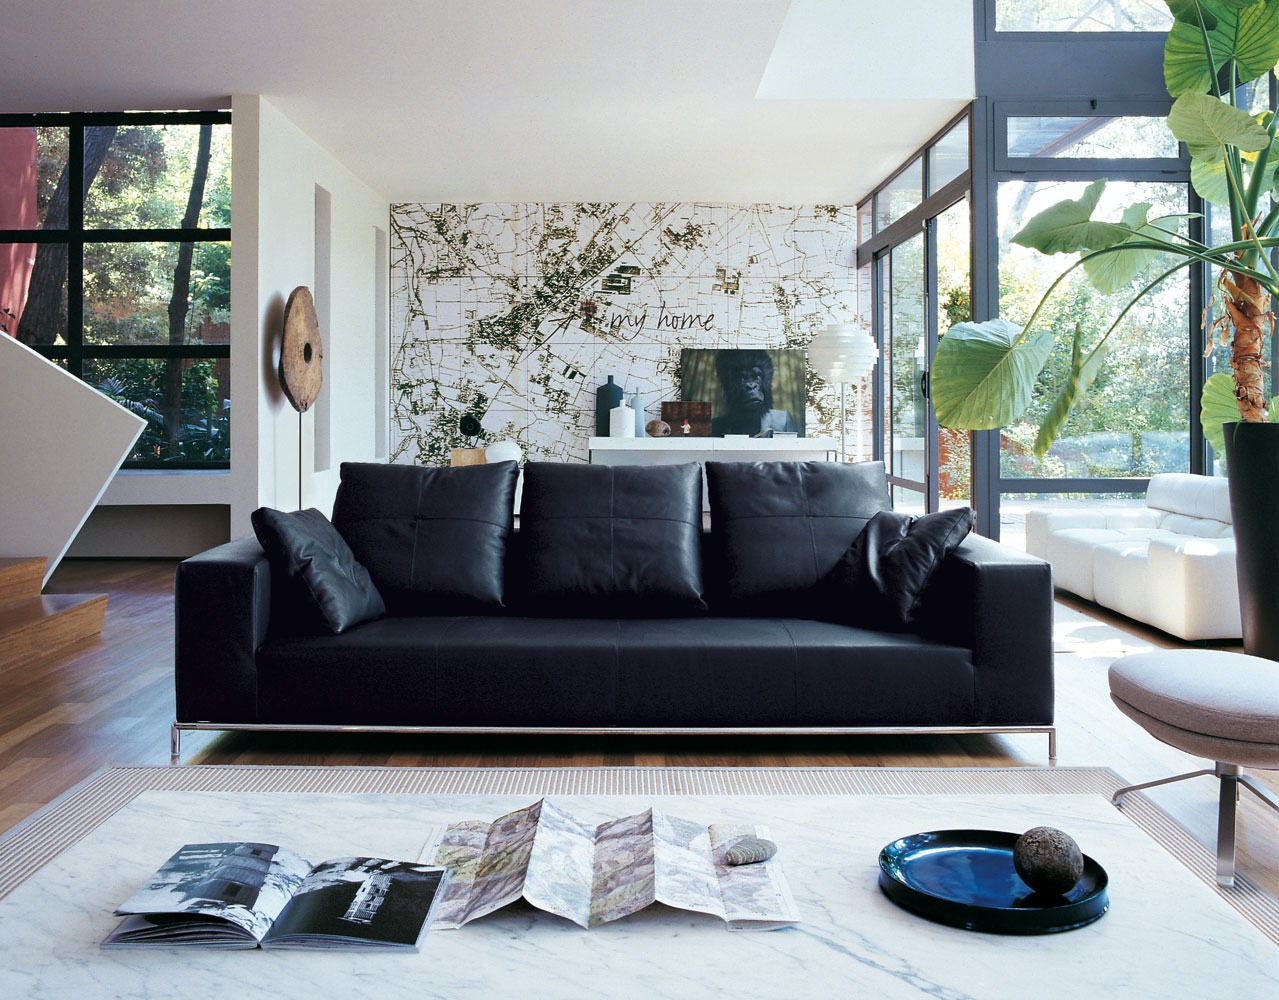 Black leather sofa interior design ideas Black sofa decor